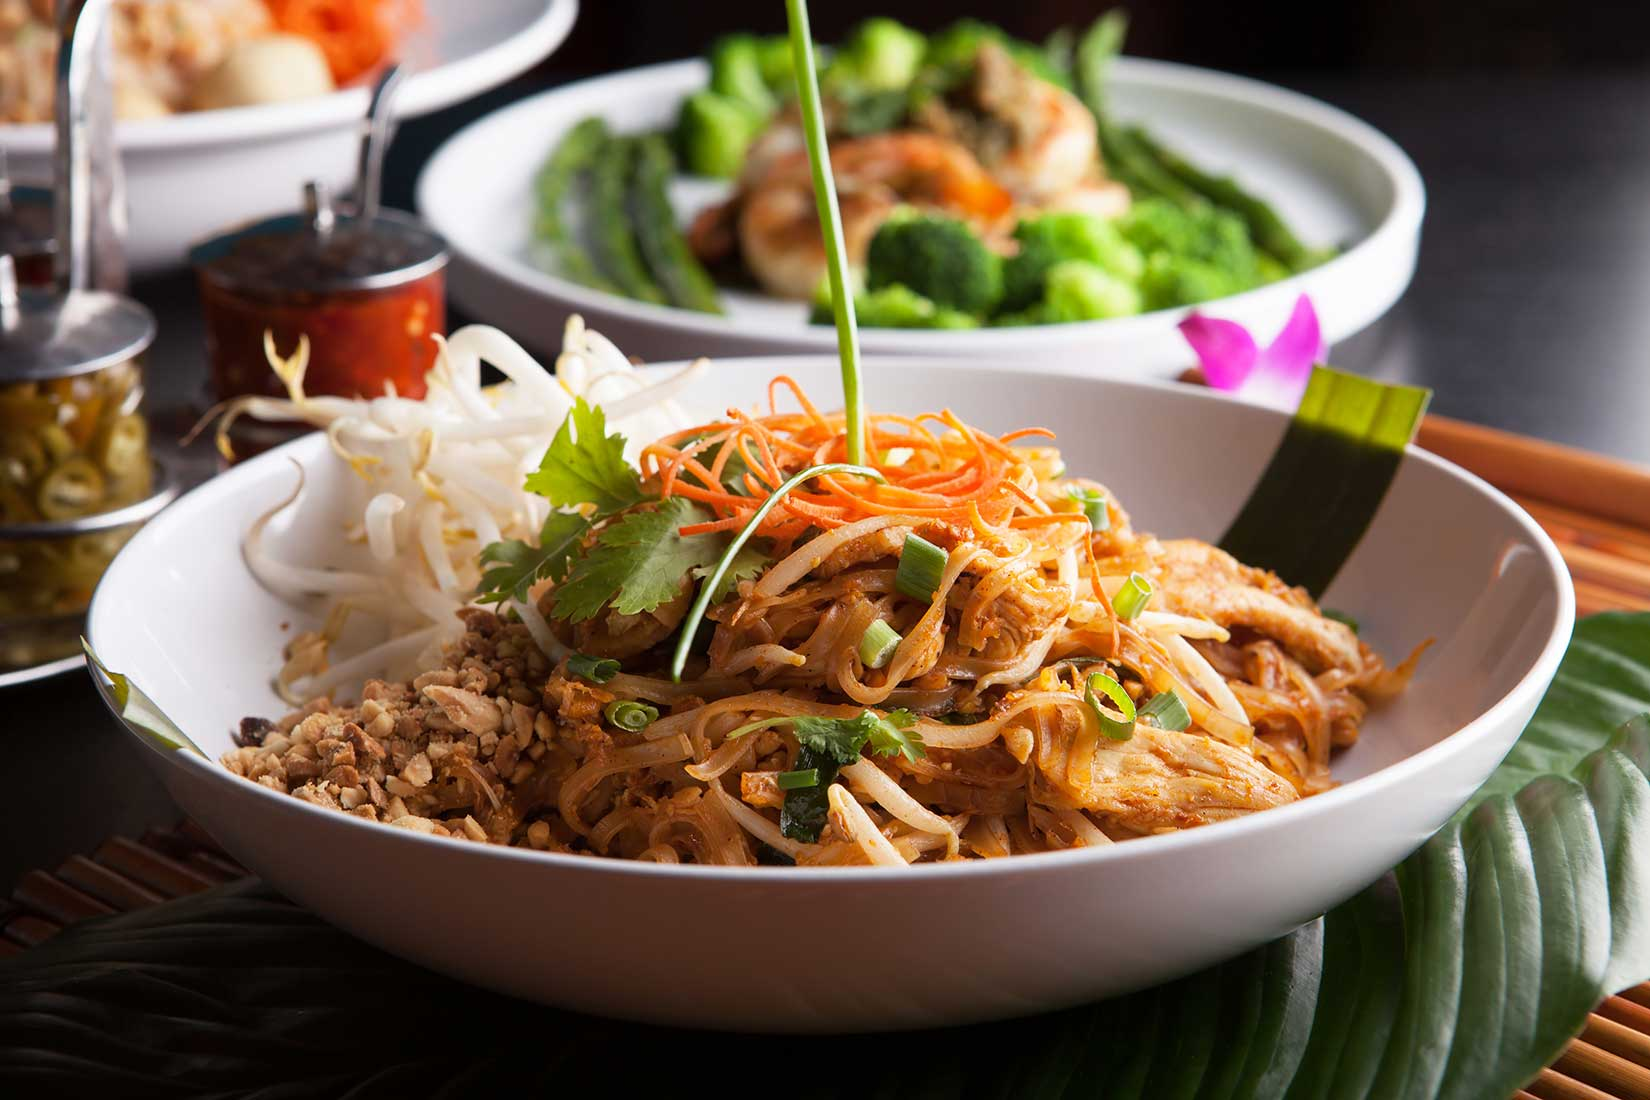 Bowl of Pad Thai